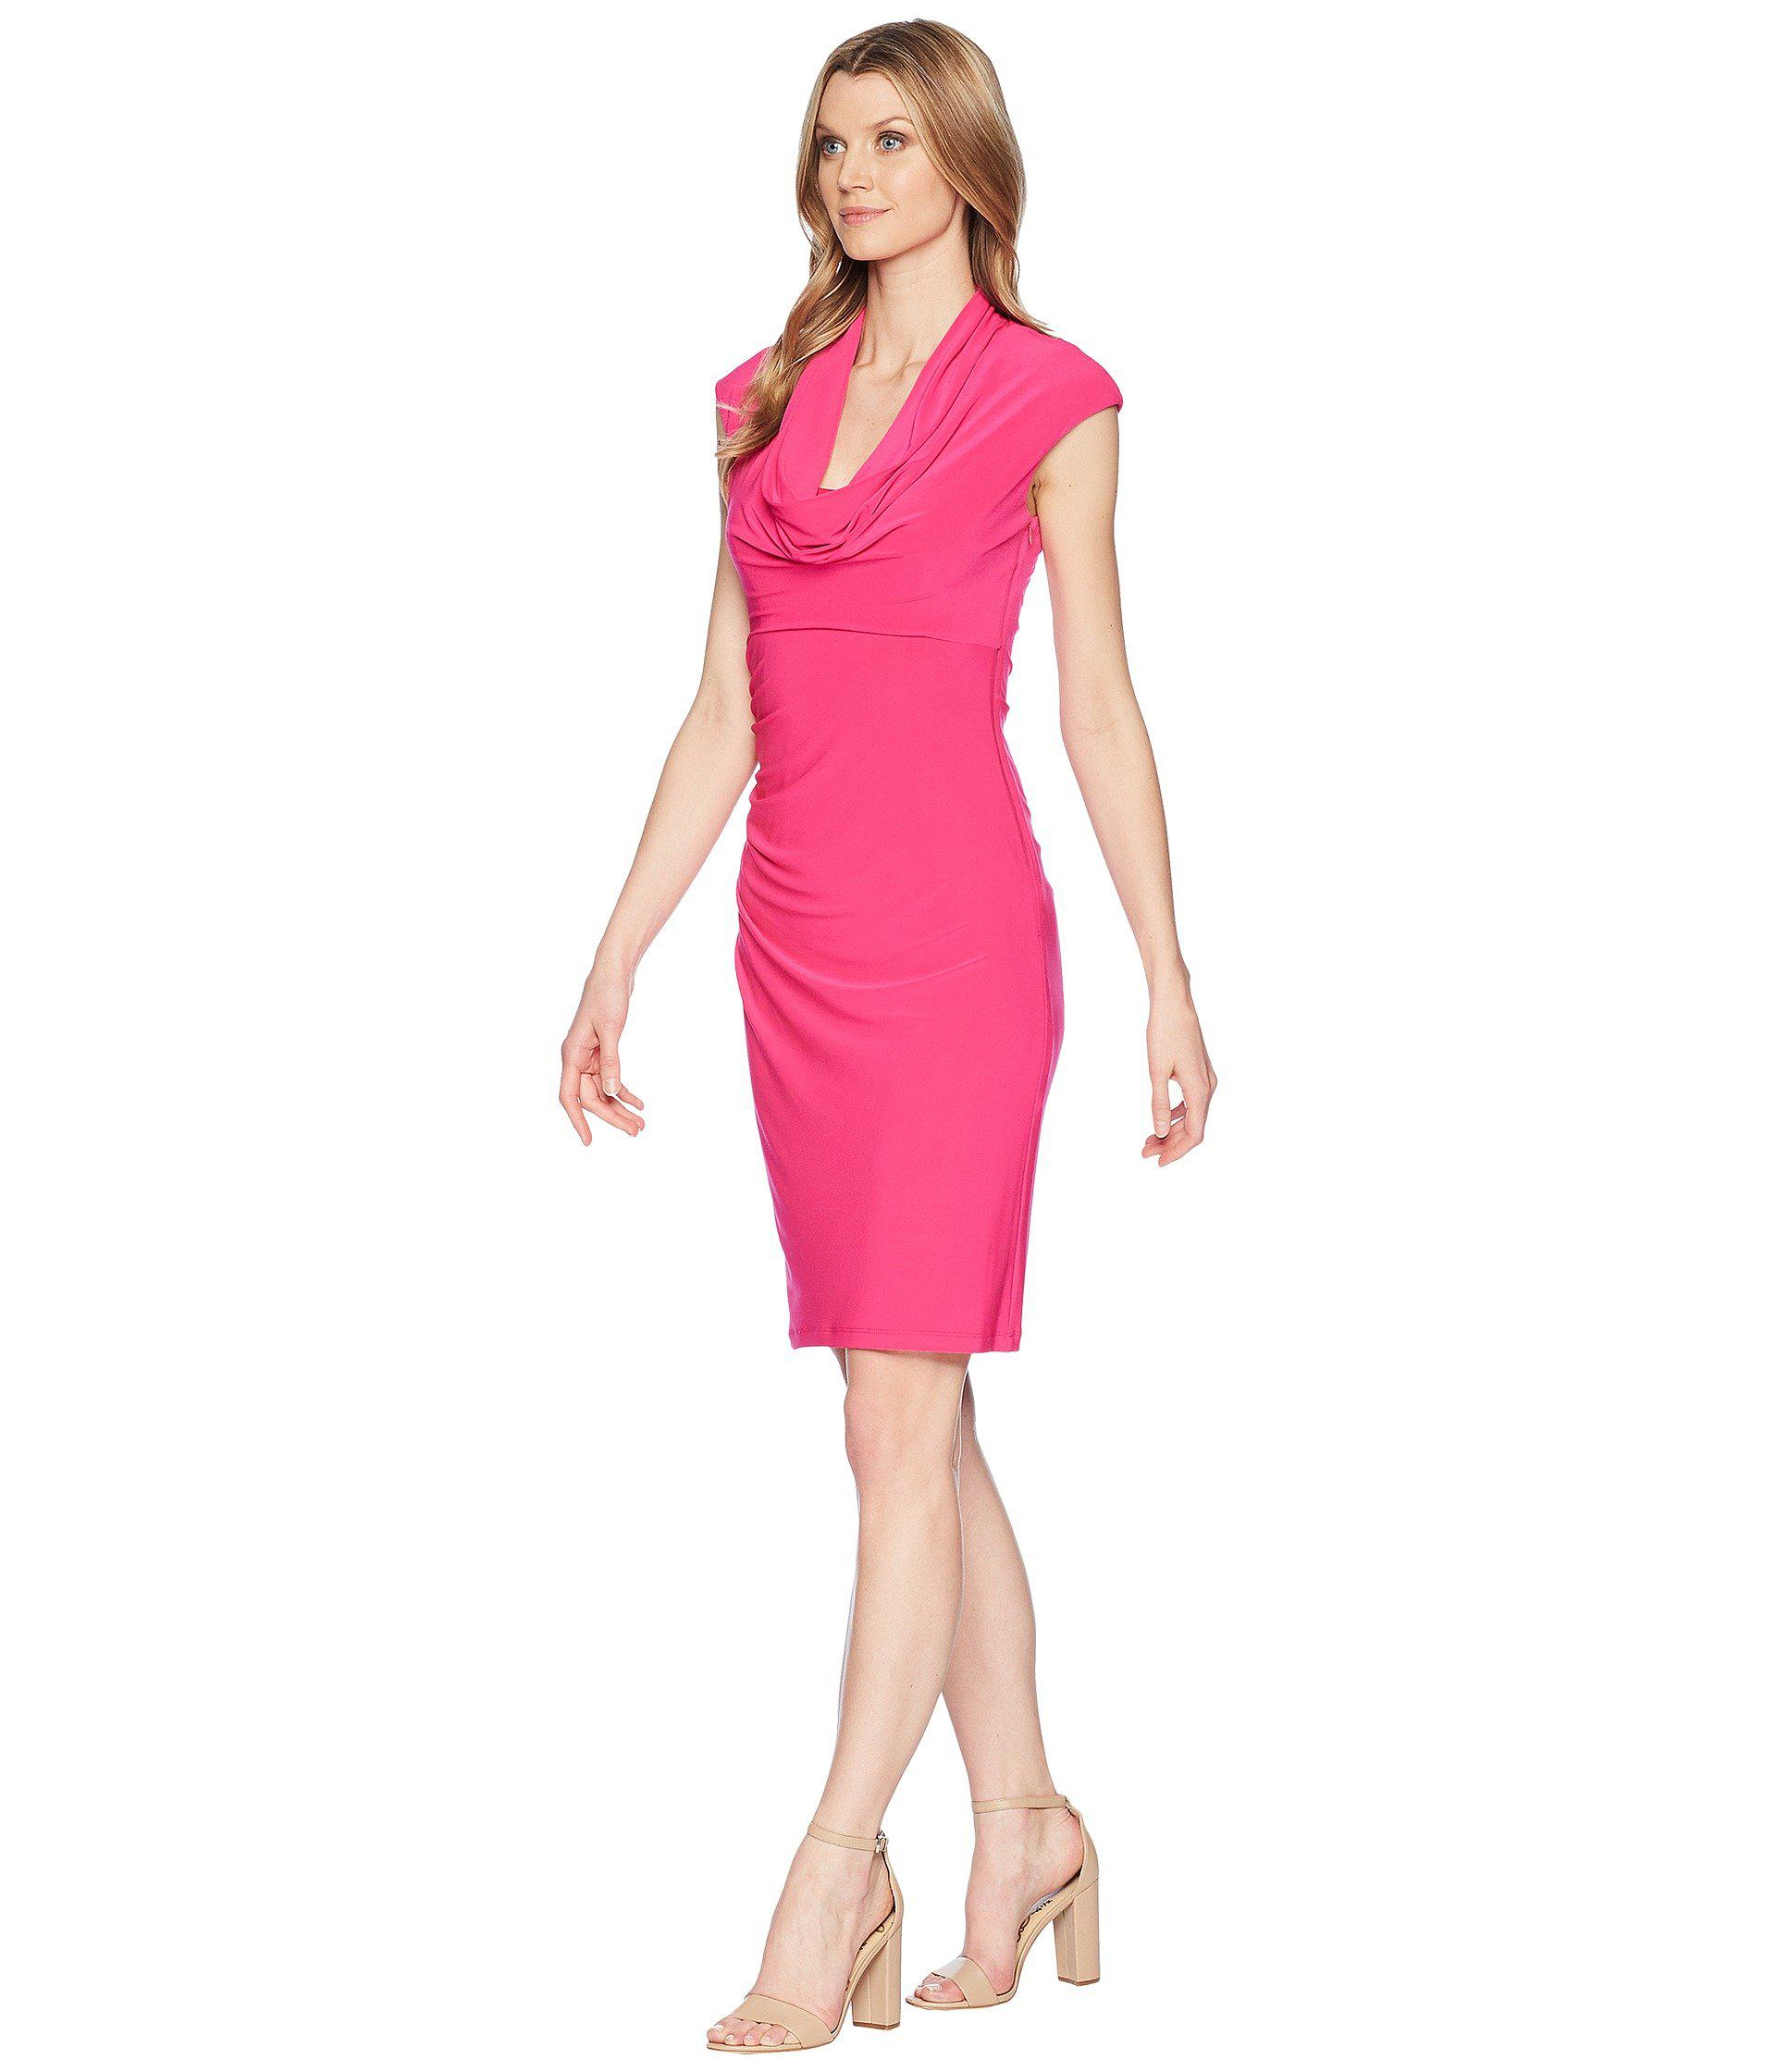 Lyst Adrianna Papell Matte Jersey Cowl Neck Drape Dress In Pink Save 50 72463768115942